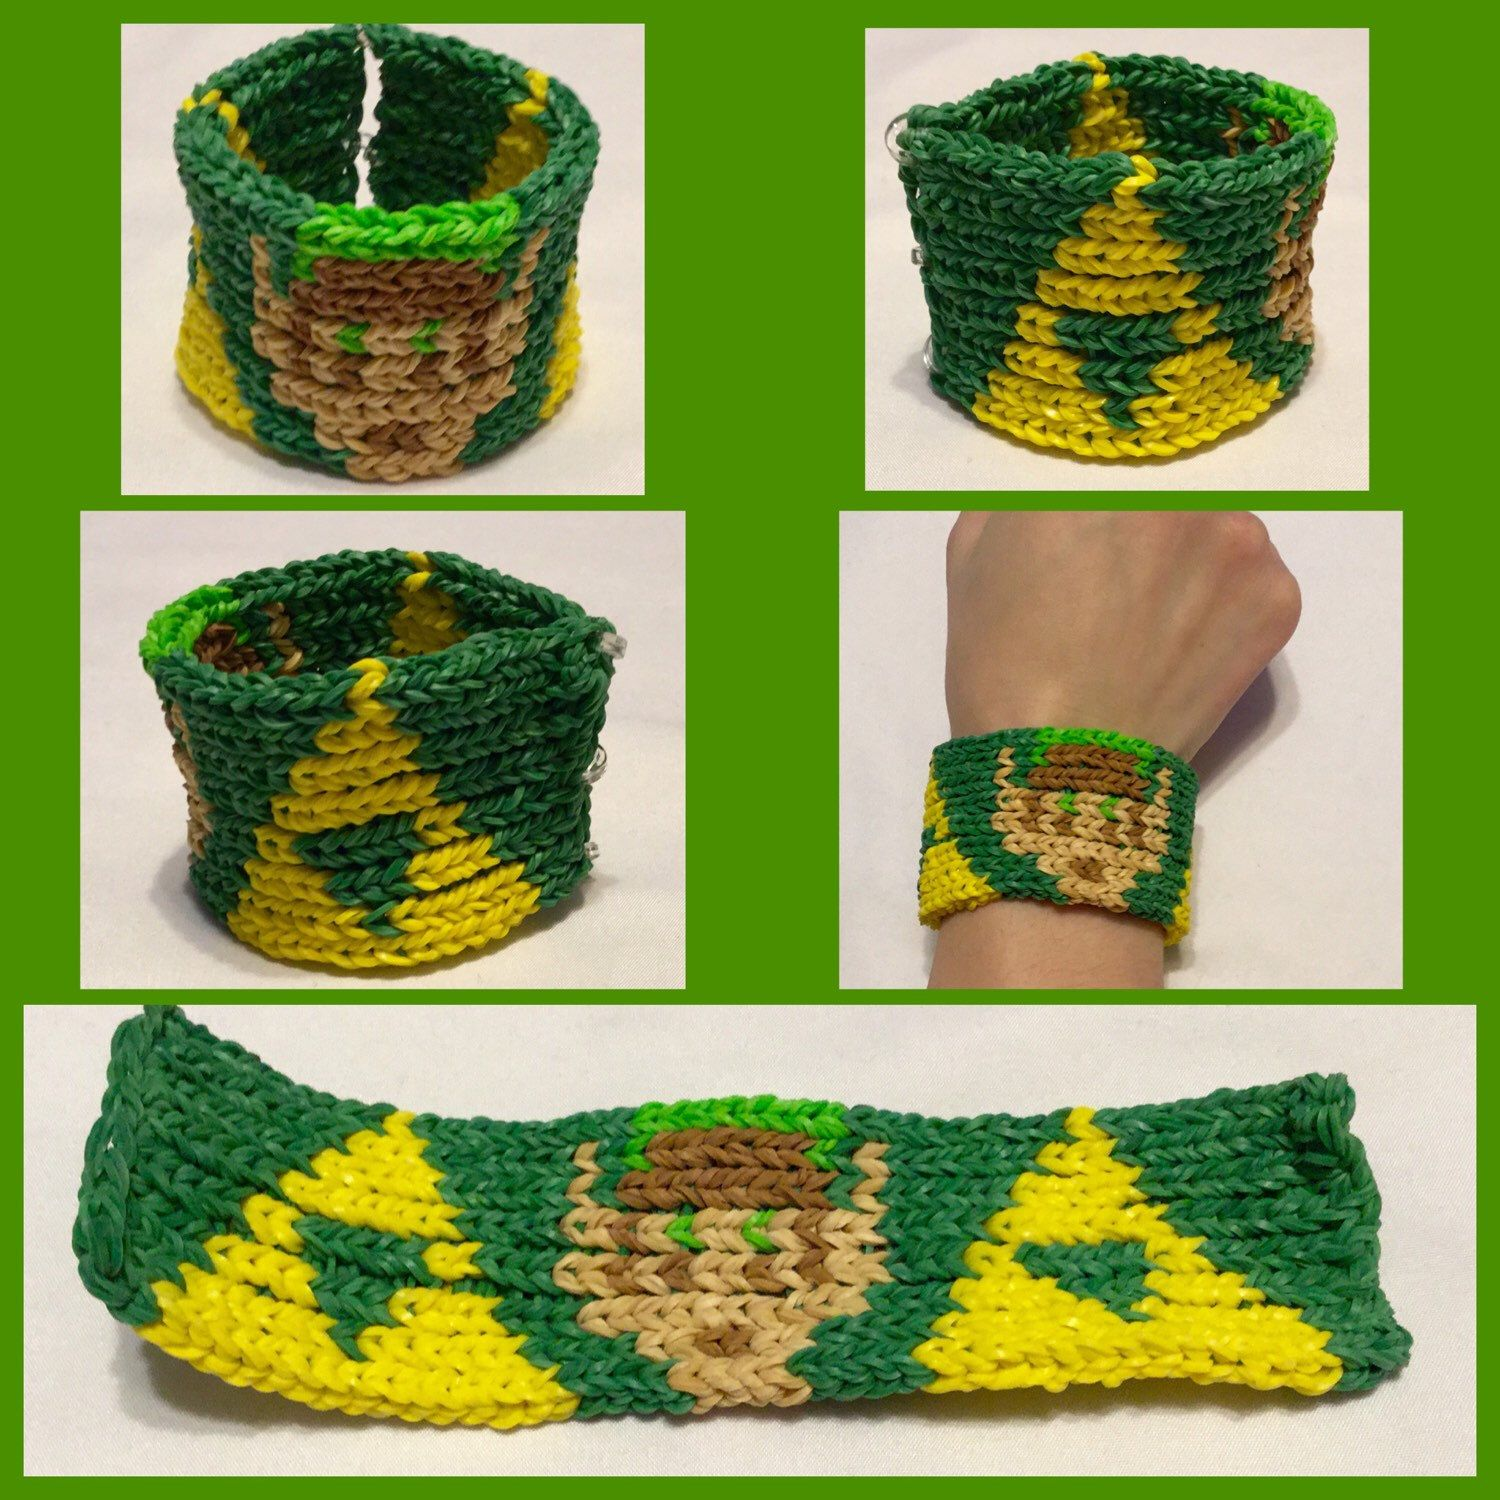 Triforce Link Bracelet By Thirdleafcreations On Etsy Https Www Rainbow Loom Diagram Etsycom Listing 215122930